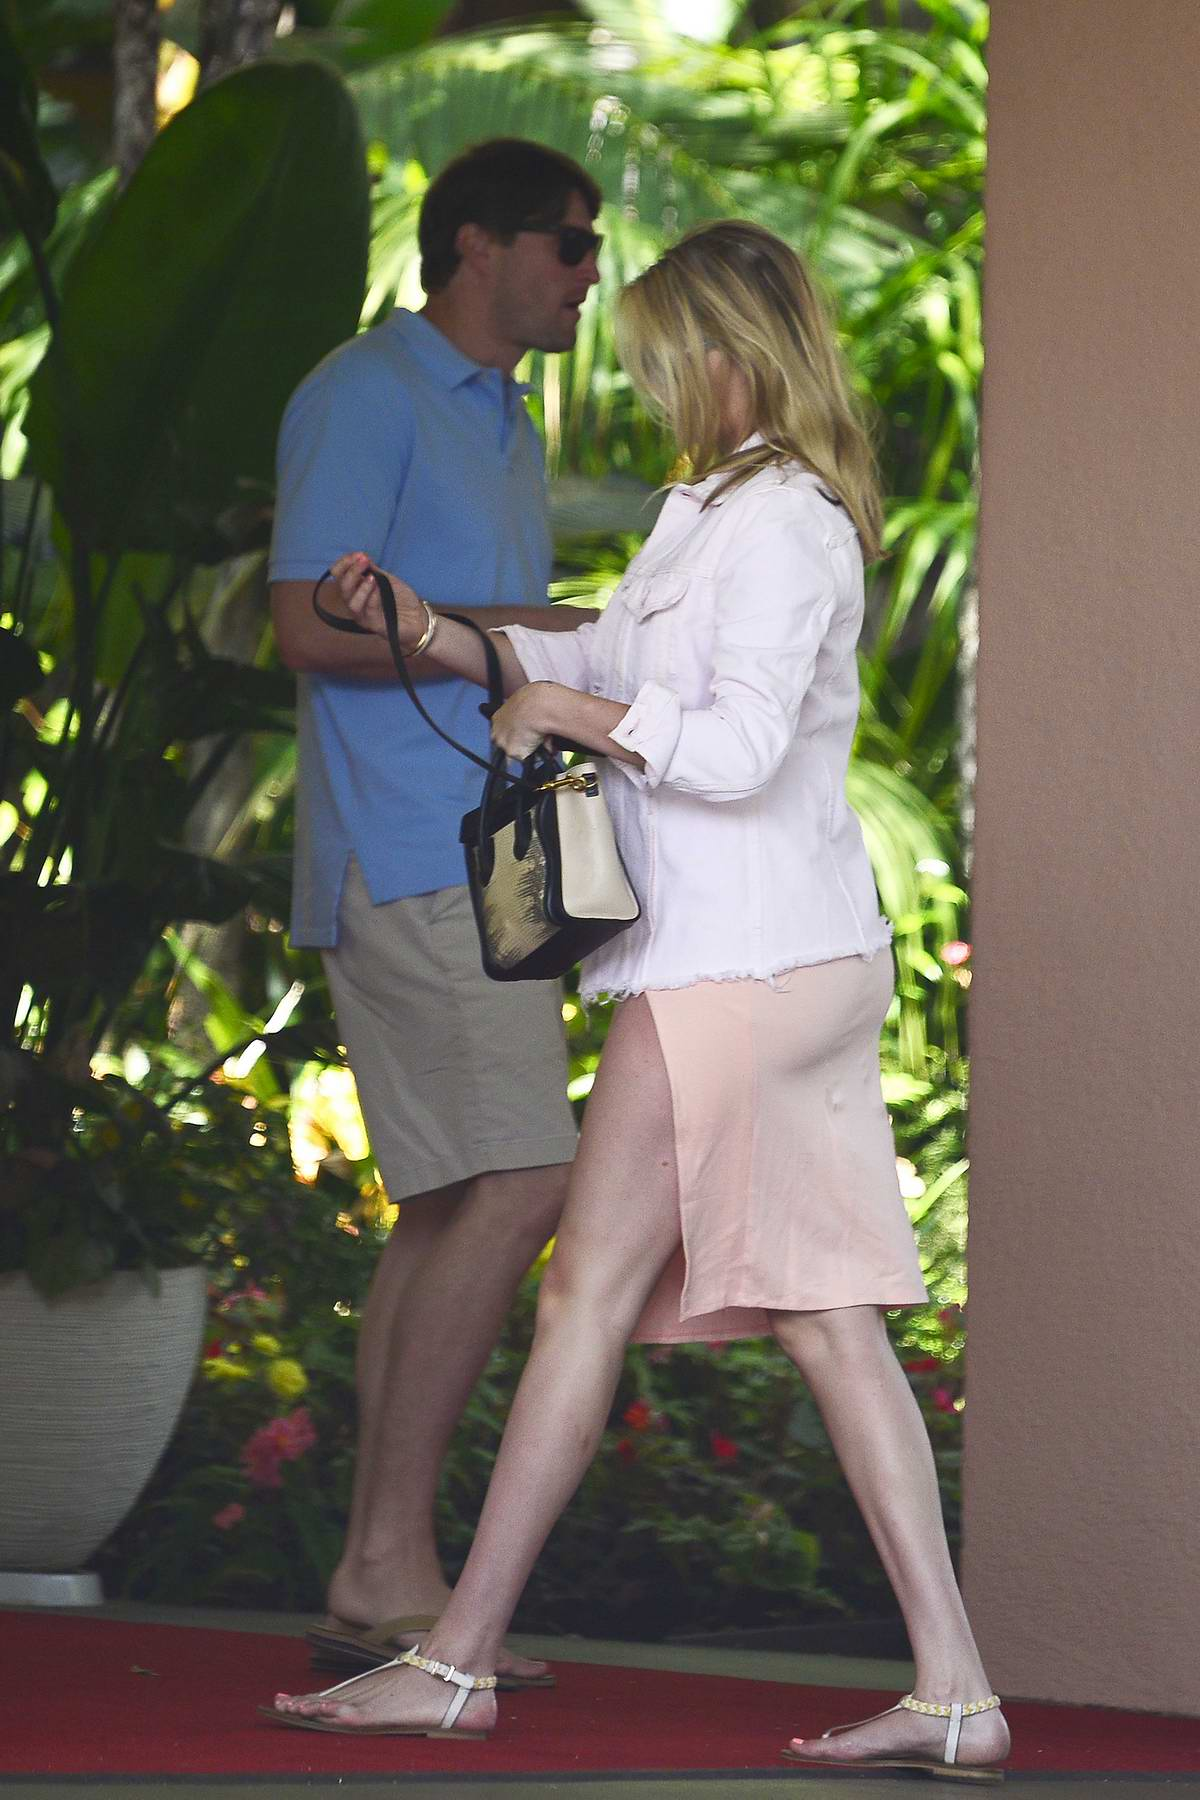 Kate Upton Wears A Light Peach Slit Dress To Lunch With Justin Verlander At The Beverly Hills Hotel In Los Angeles 240818 4 Kate upton seen while leaving her hotel in new york city. kate upton wears a light peach slit dress to lunch with justin verlander at the beverly hills hotel in los angeles 240818 4